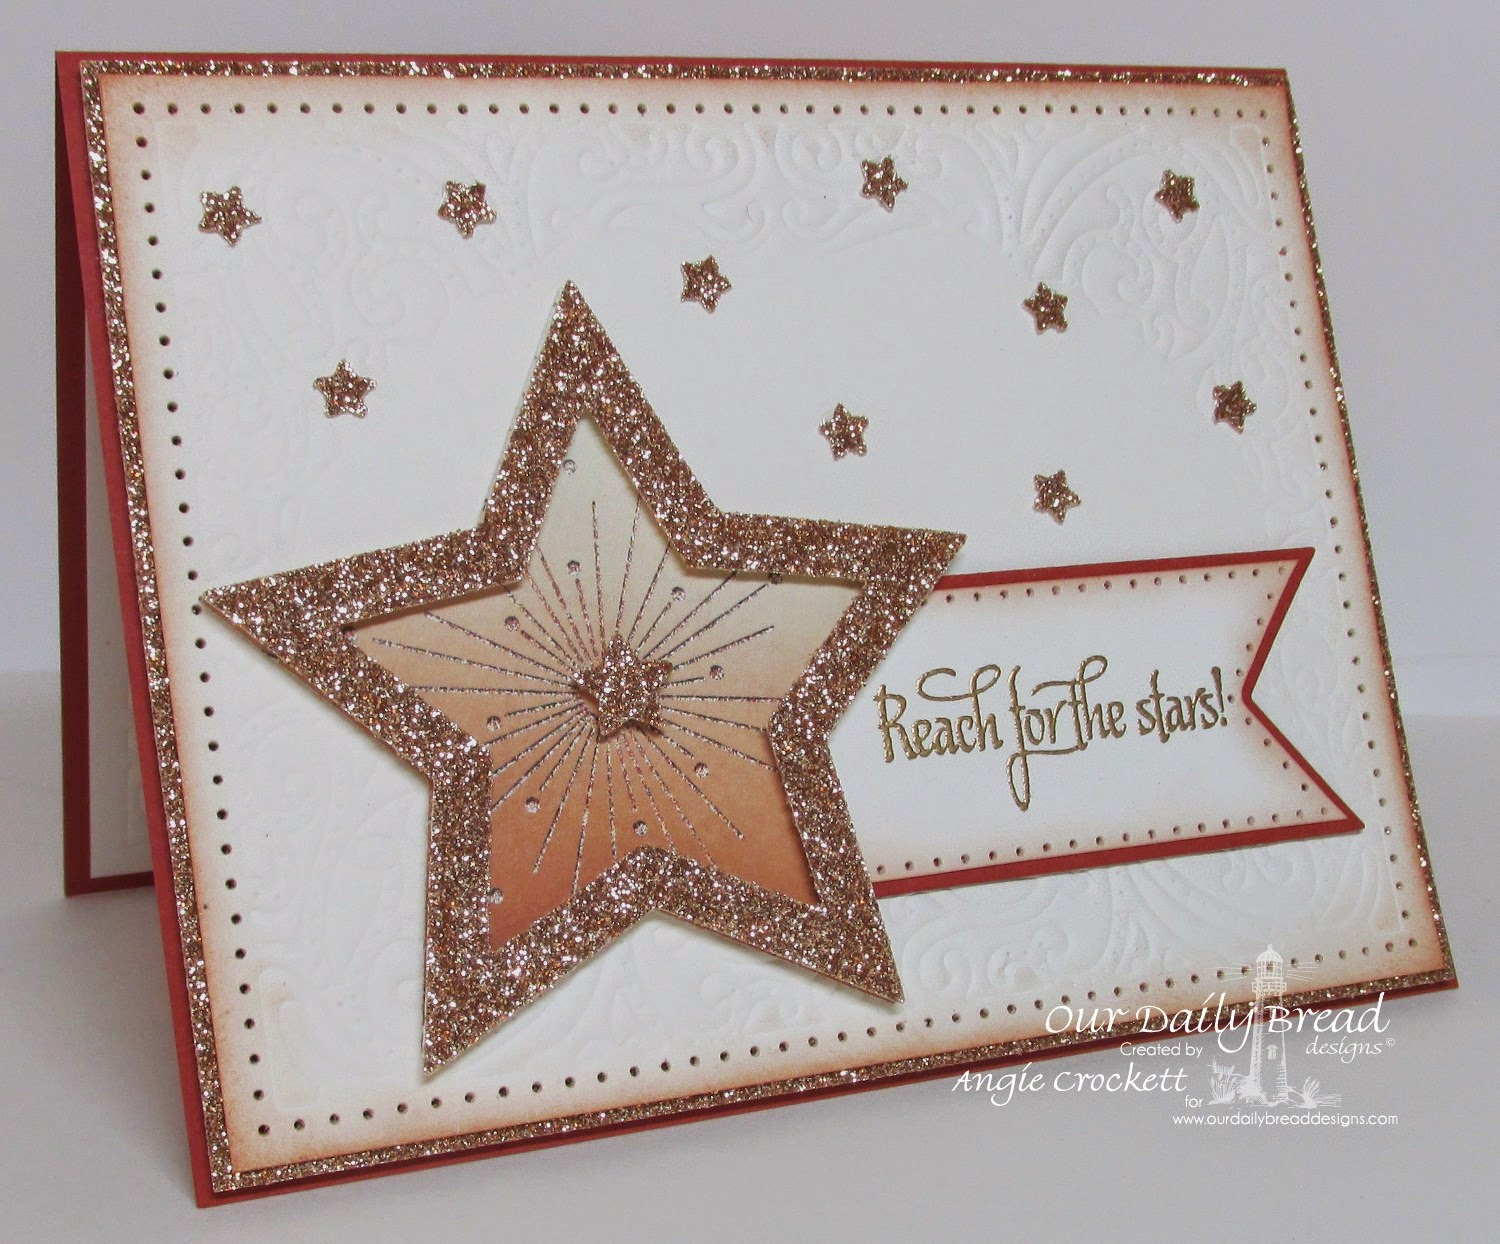 ODBD Reach for the Stars, ODBD Custom Sparkling Stars Dies, Vinatage Flourish Pattern Dies, Winter Collection Designer Paper, Card Designer Angie Crockett